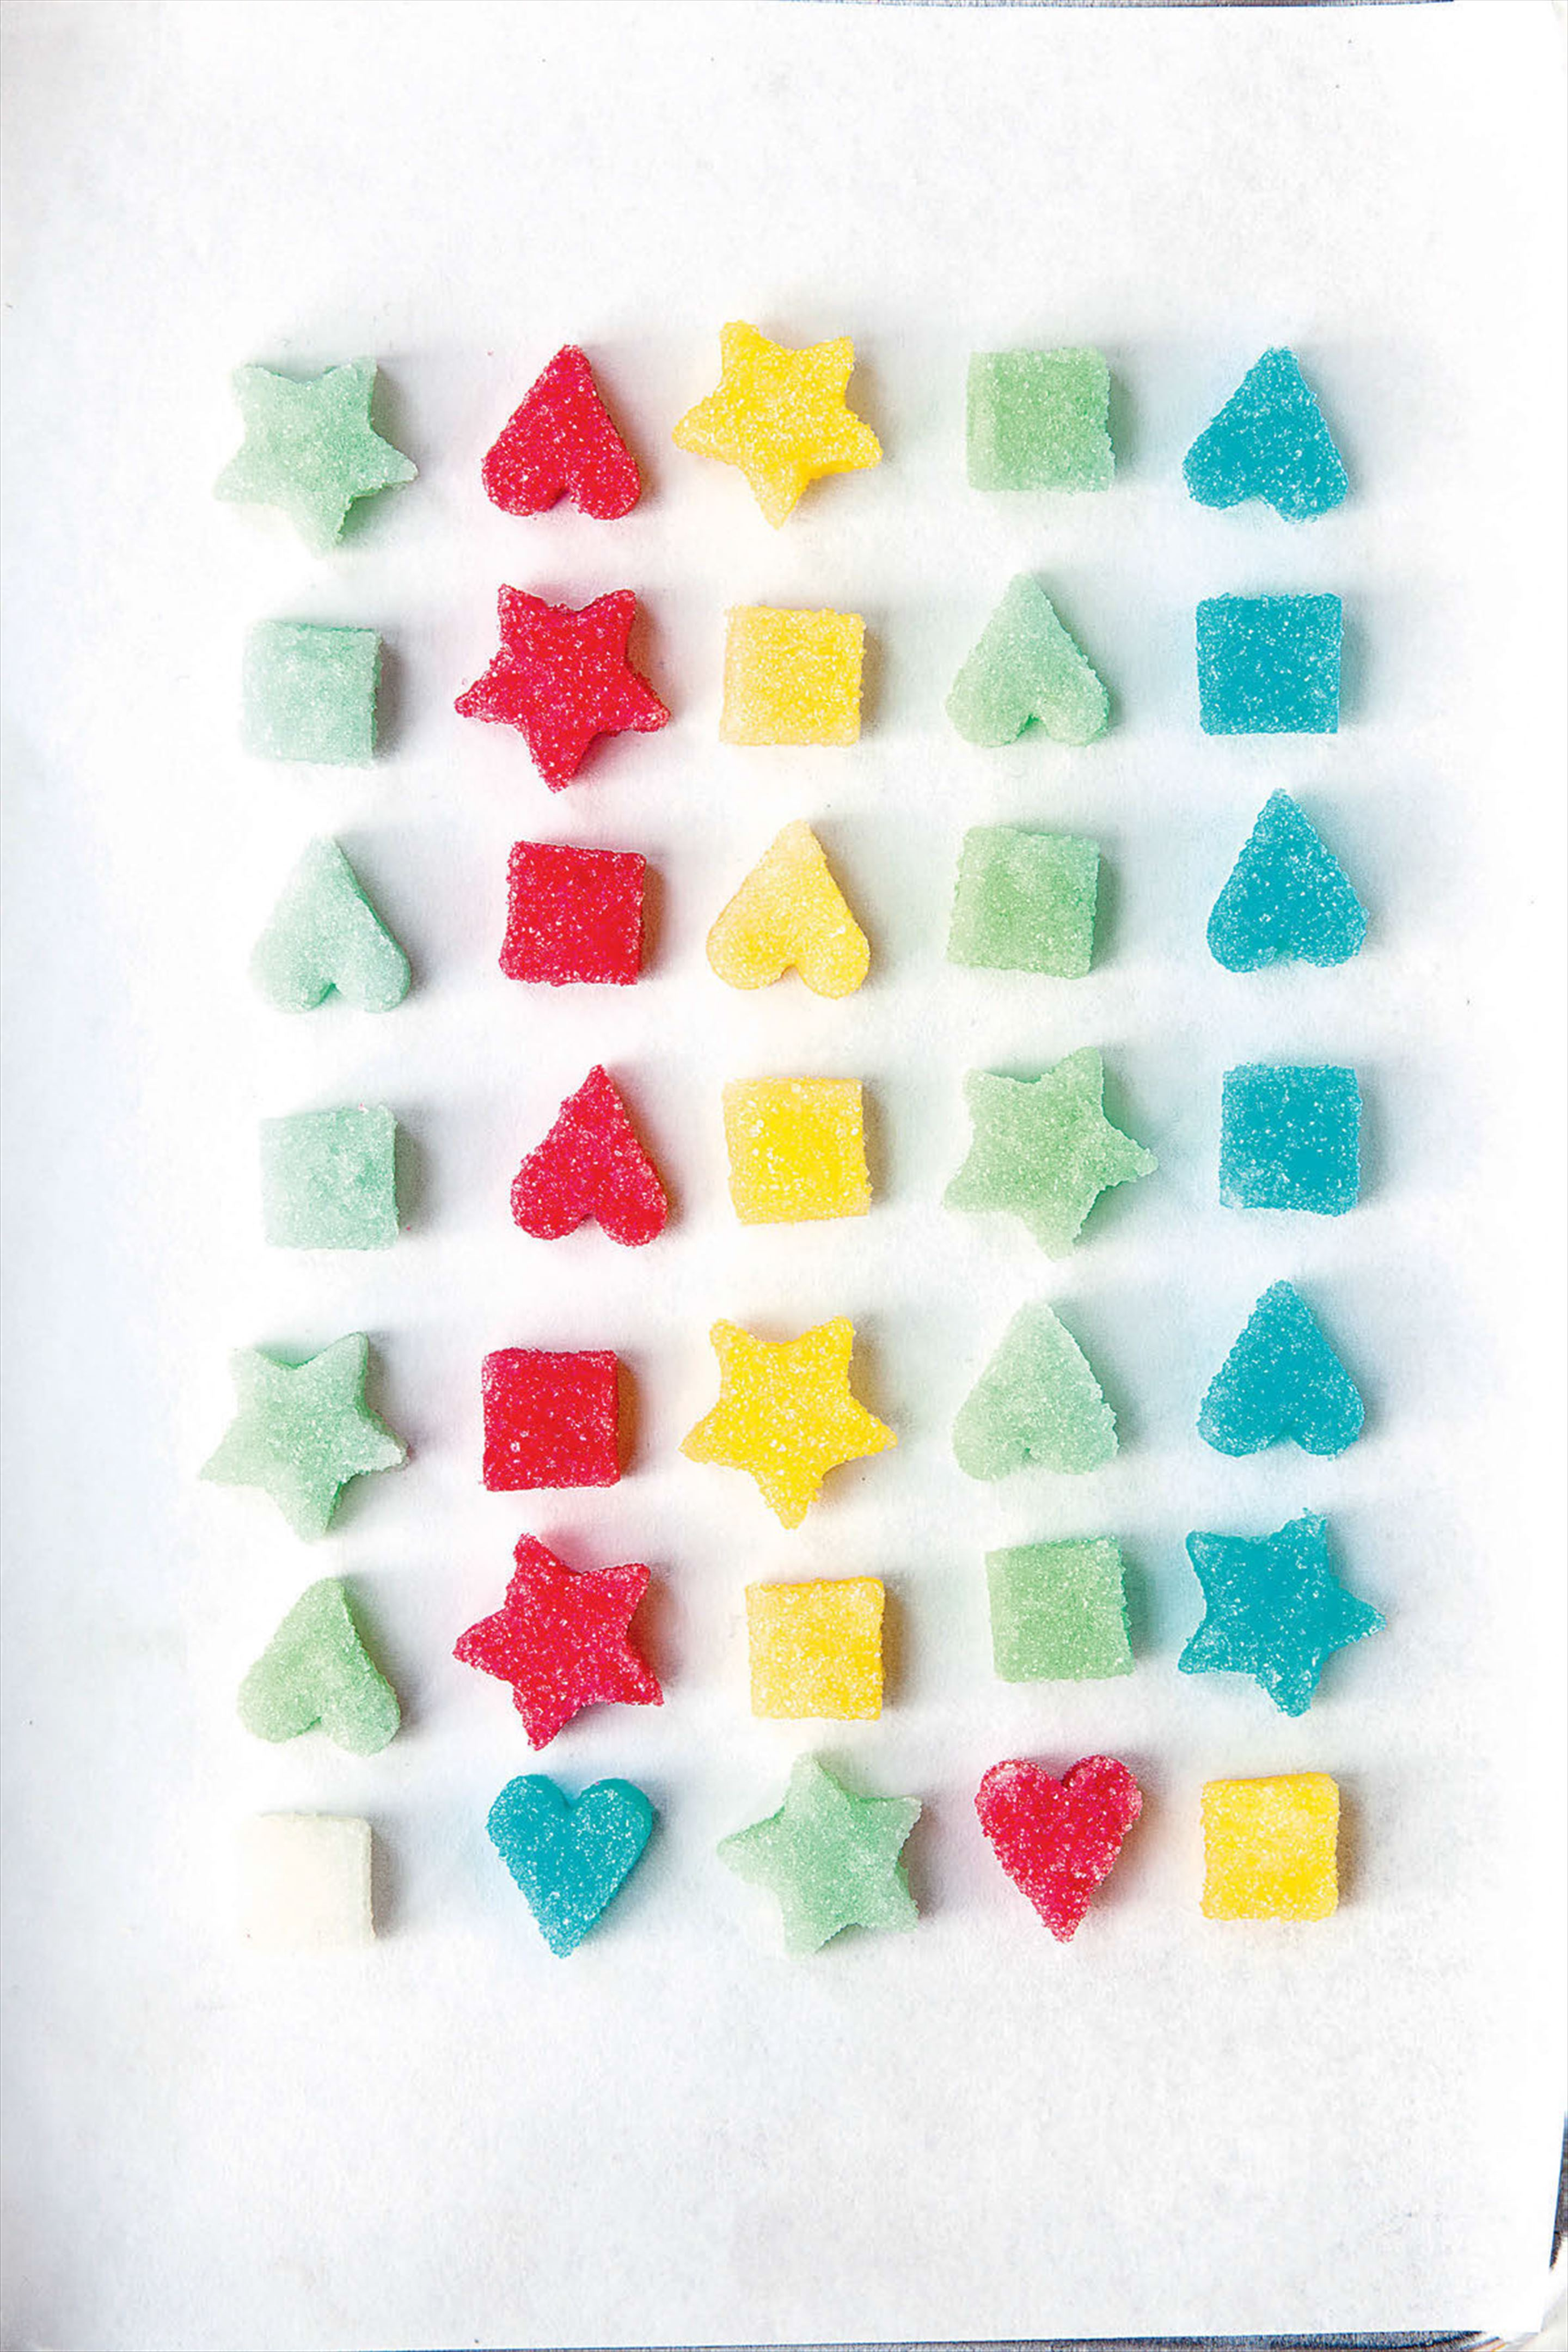 Coloured sugar shapes